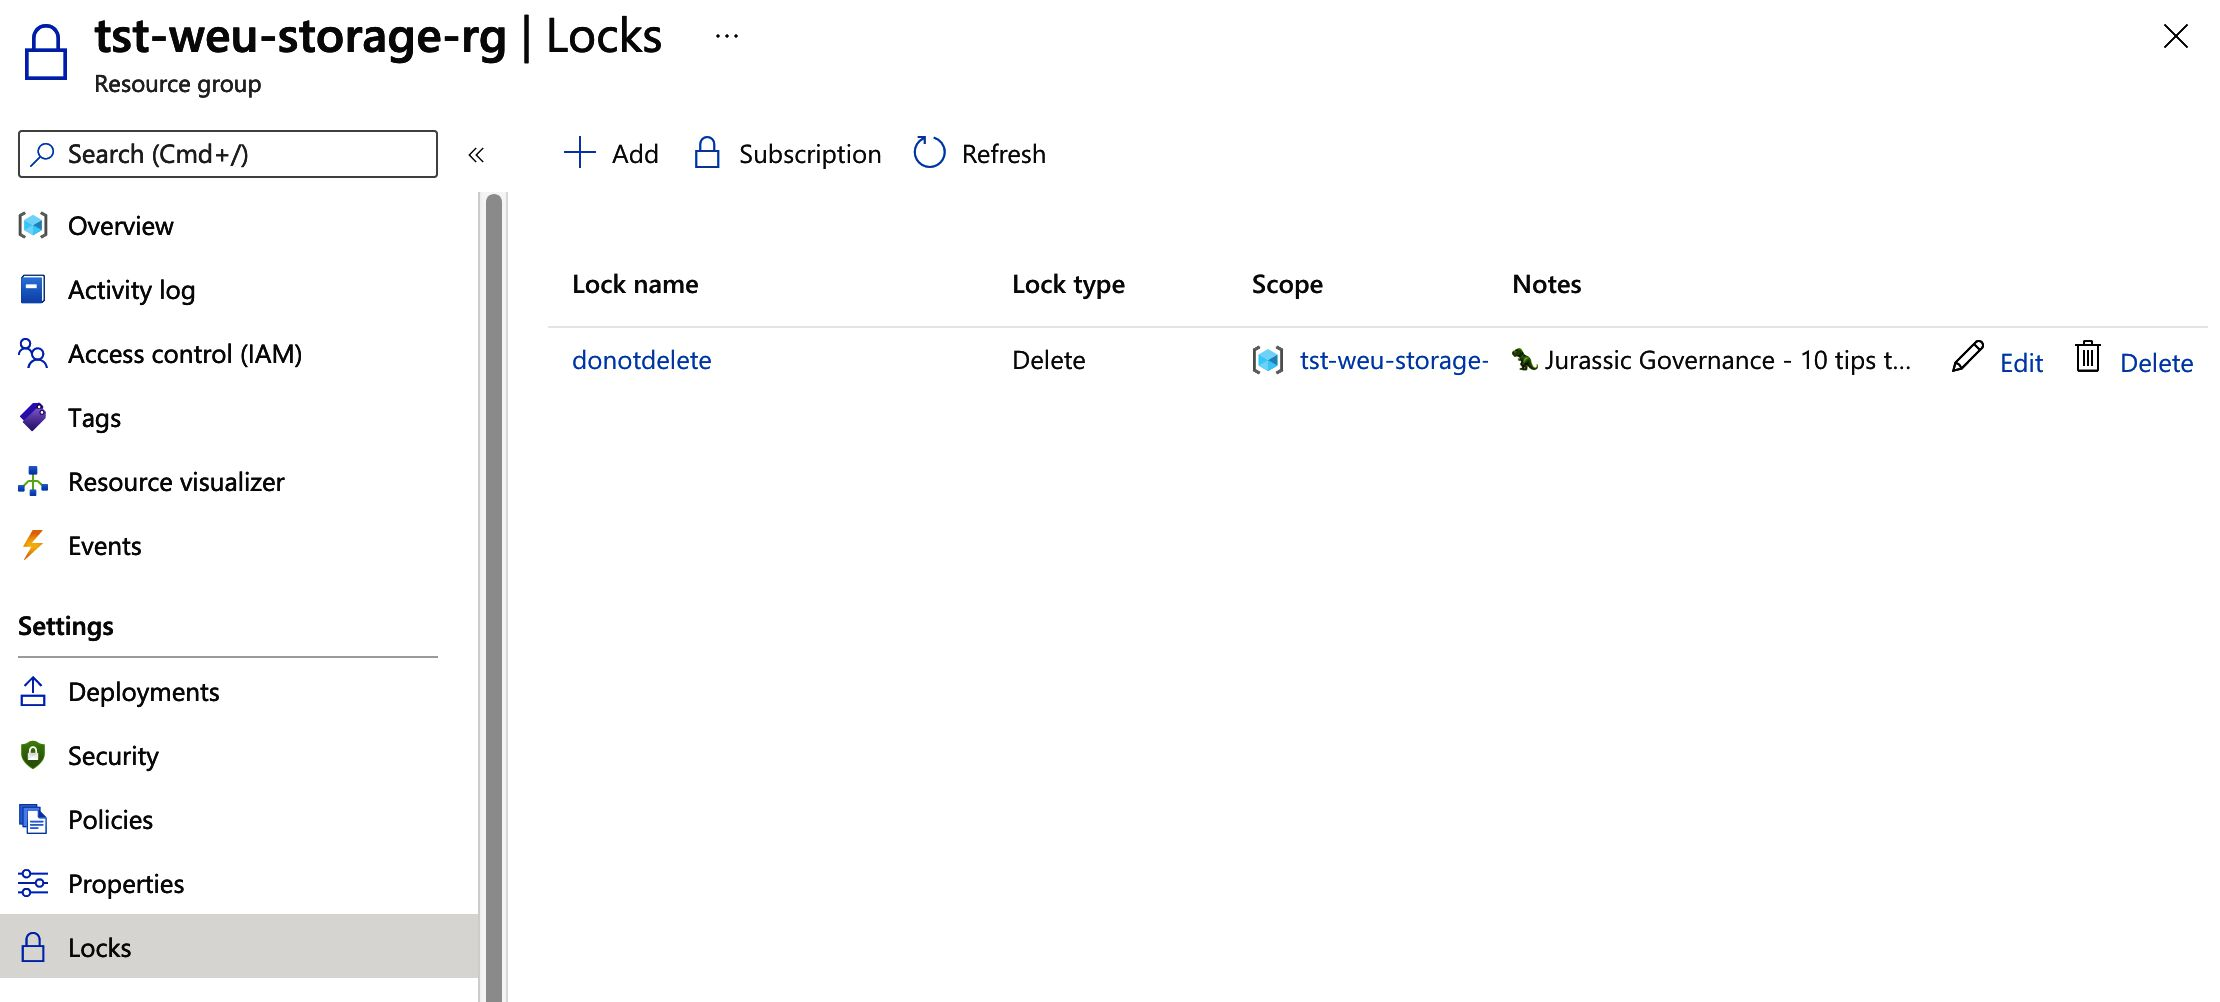 Image of the resource group locks settings view in the Azure Portal, a do not delete entry has been added.